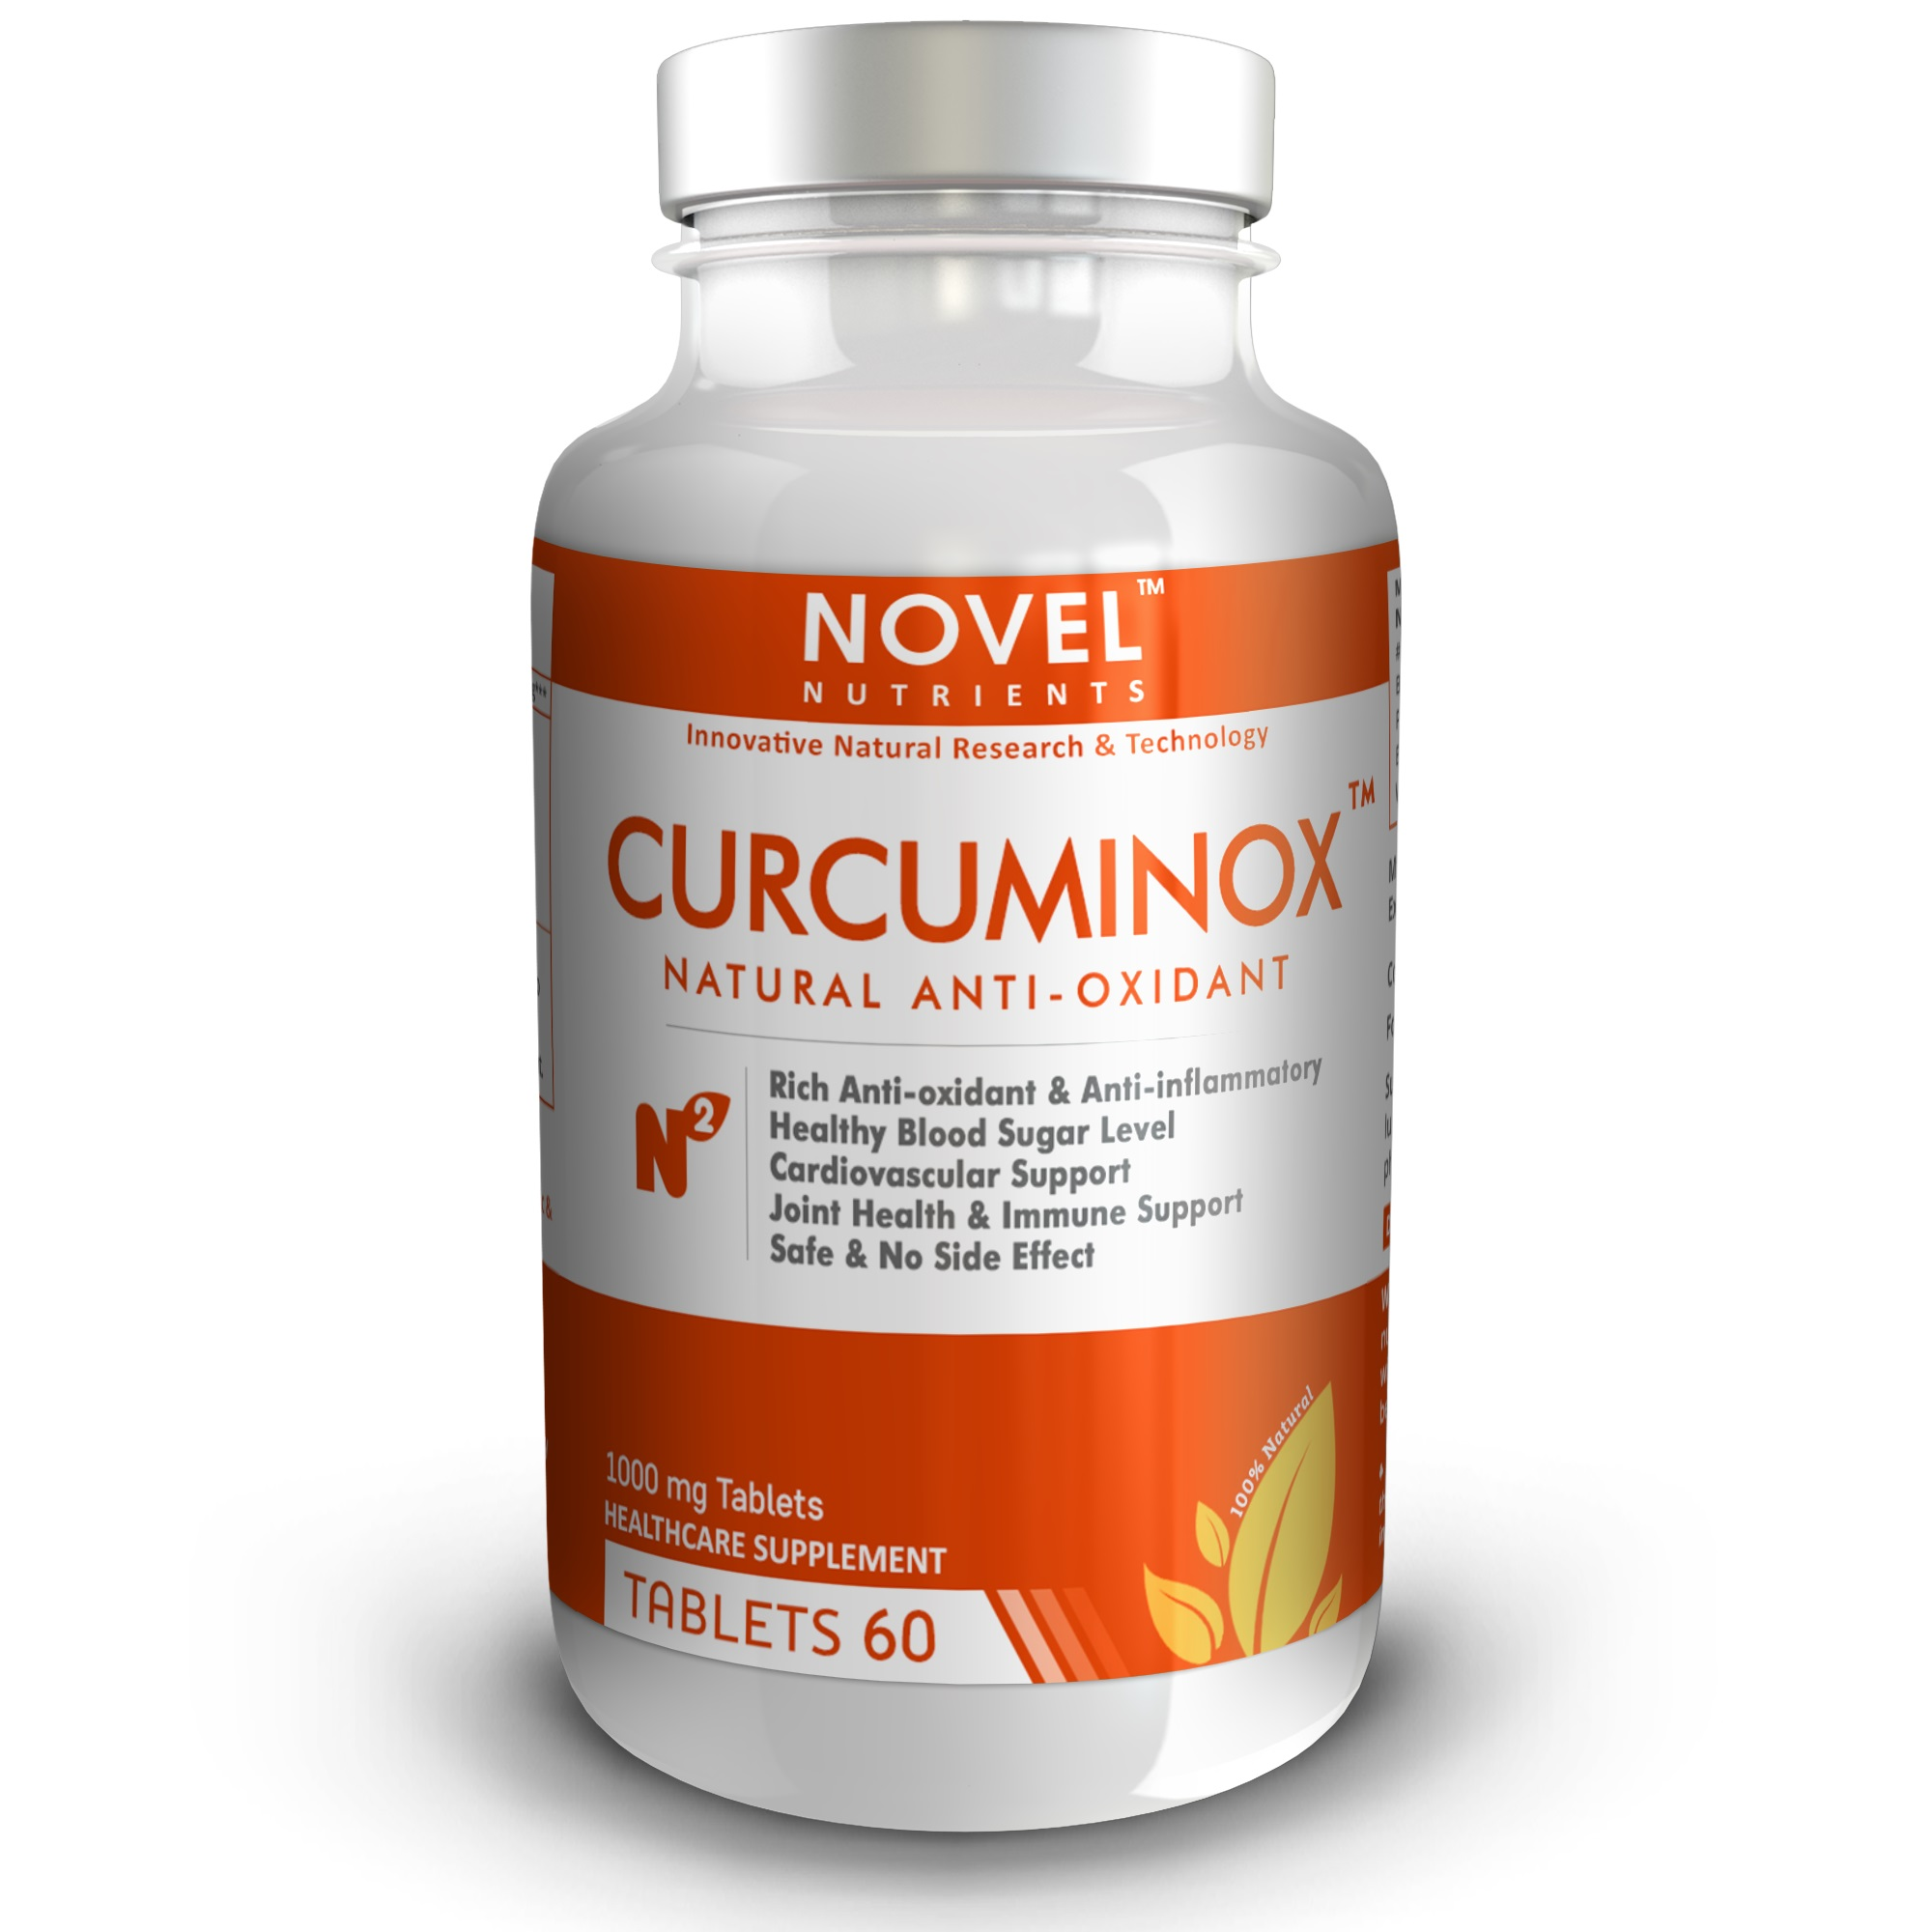 CURCUMINOX - TM 1000 MG 60 TABLETS - NATURAL ANTIOXIDANT